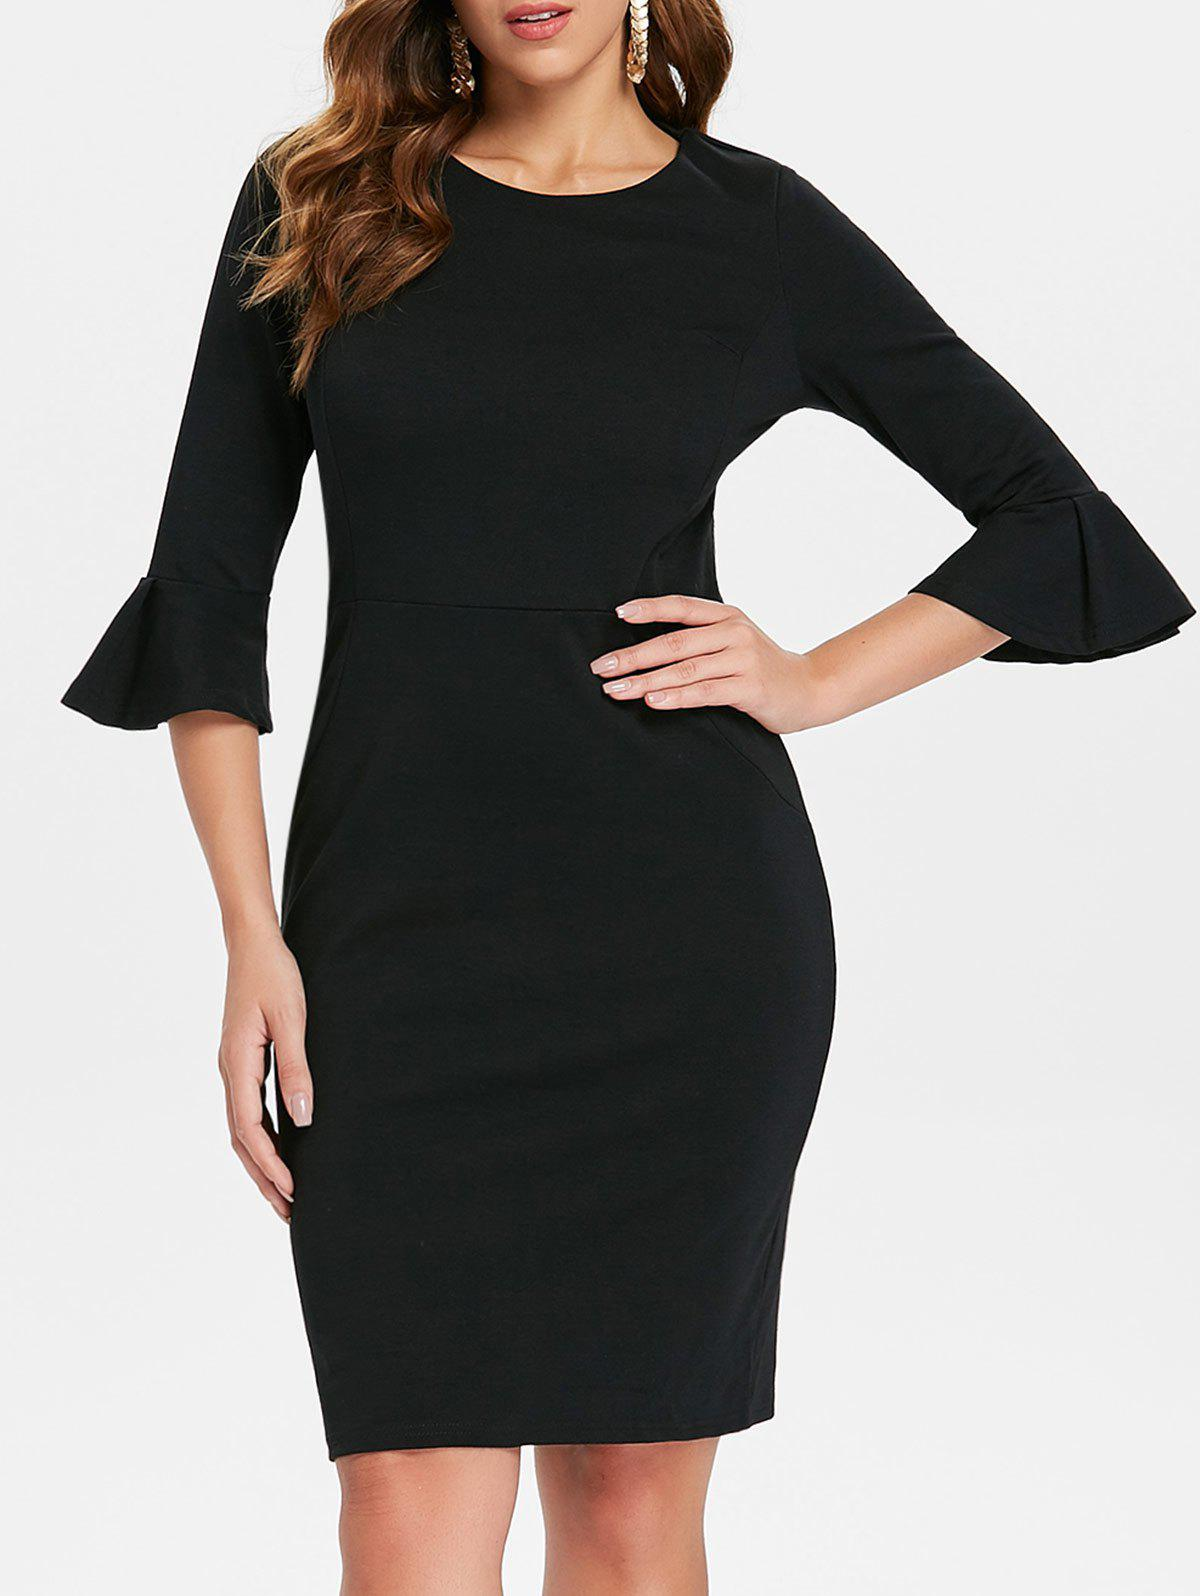 New Bodycon Bell Sleeve Knee Length Dress